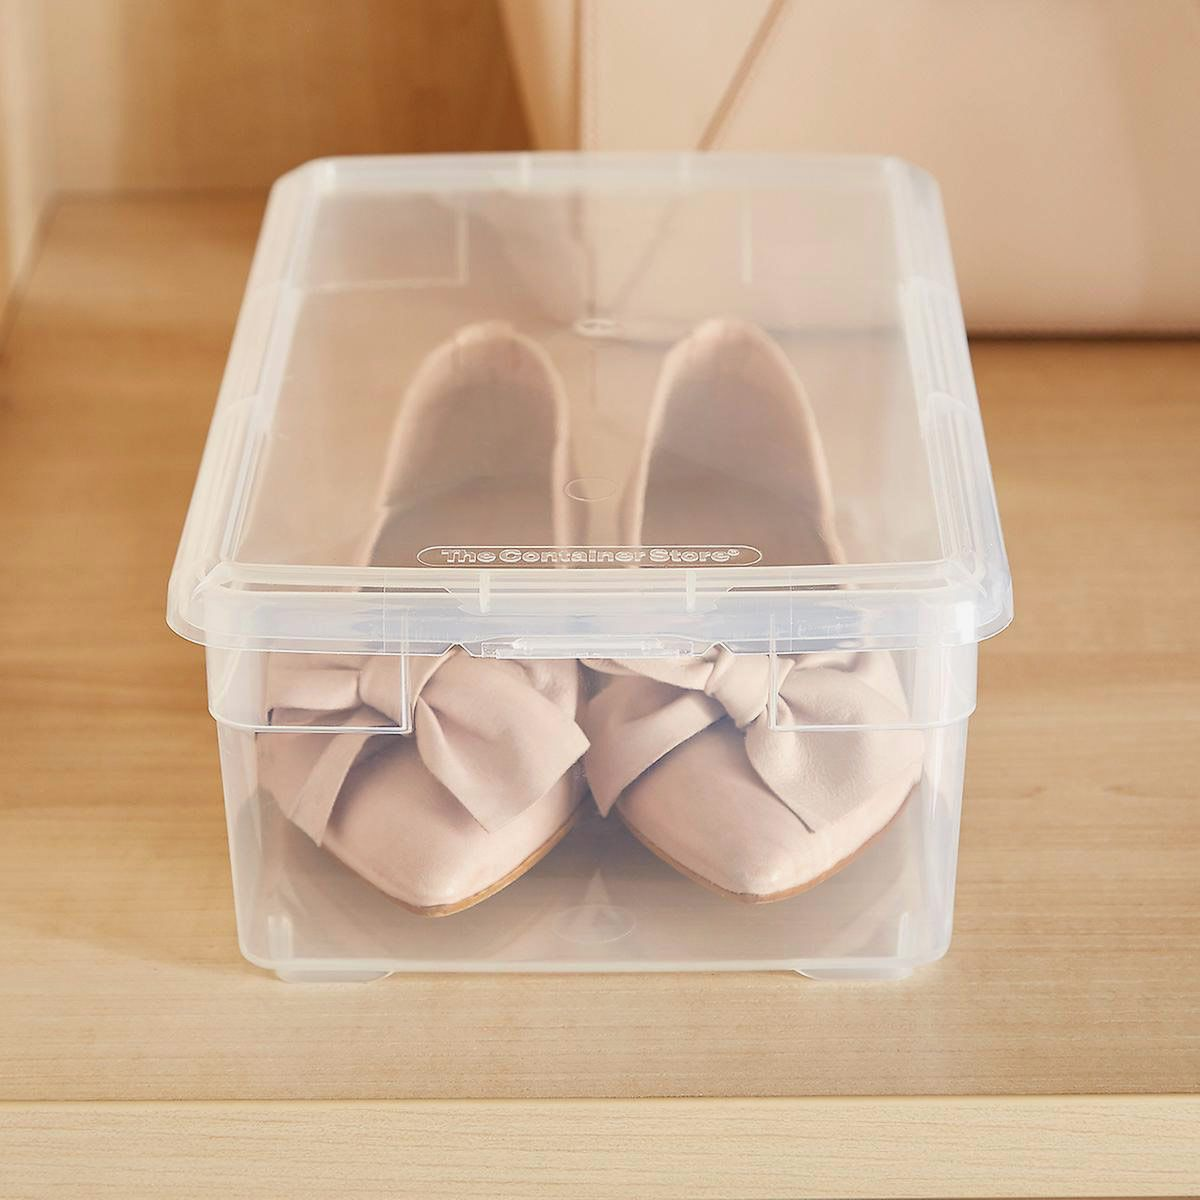 Pink flat shoes in a clear plastic box.